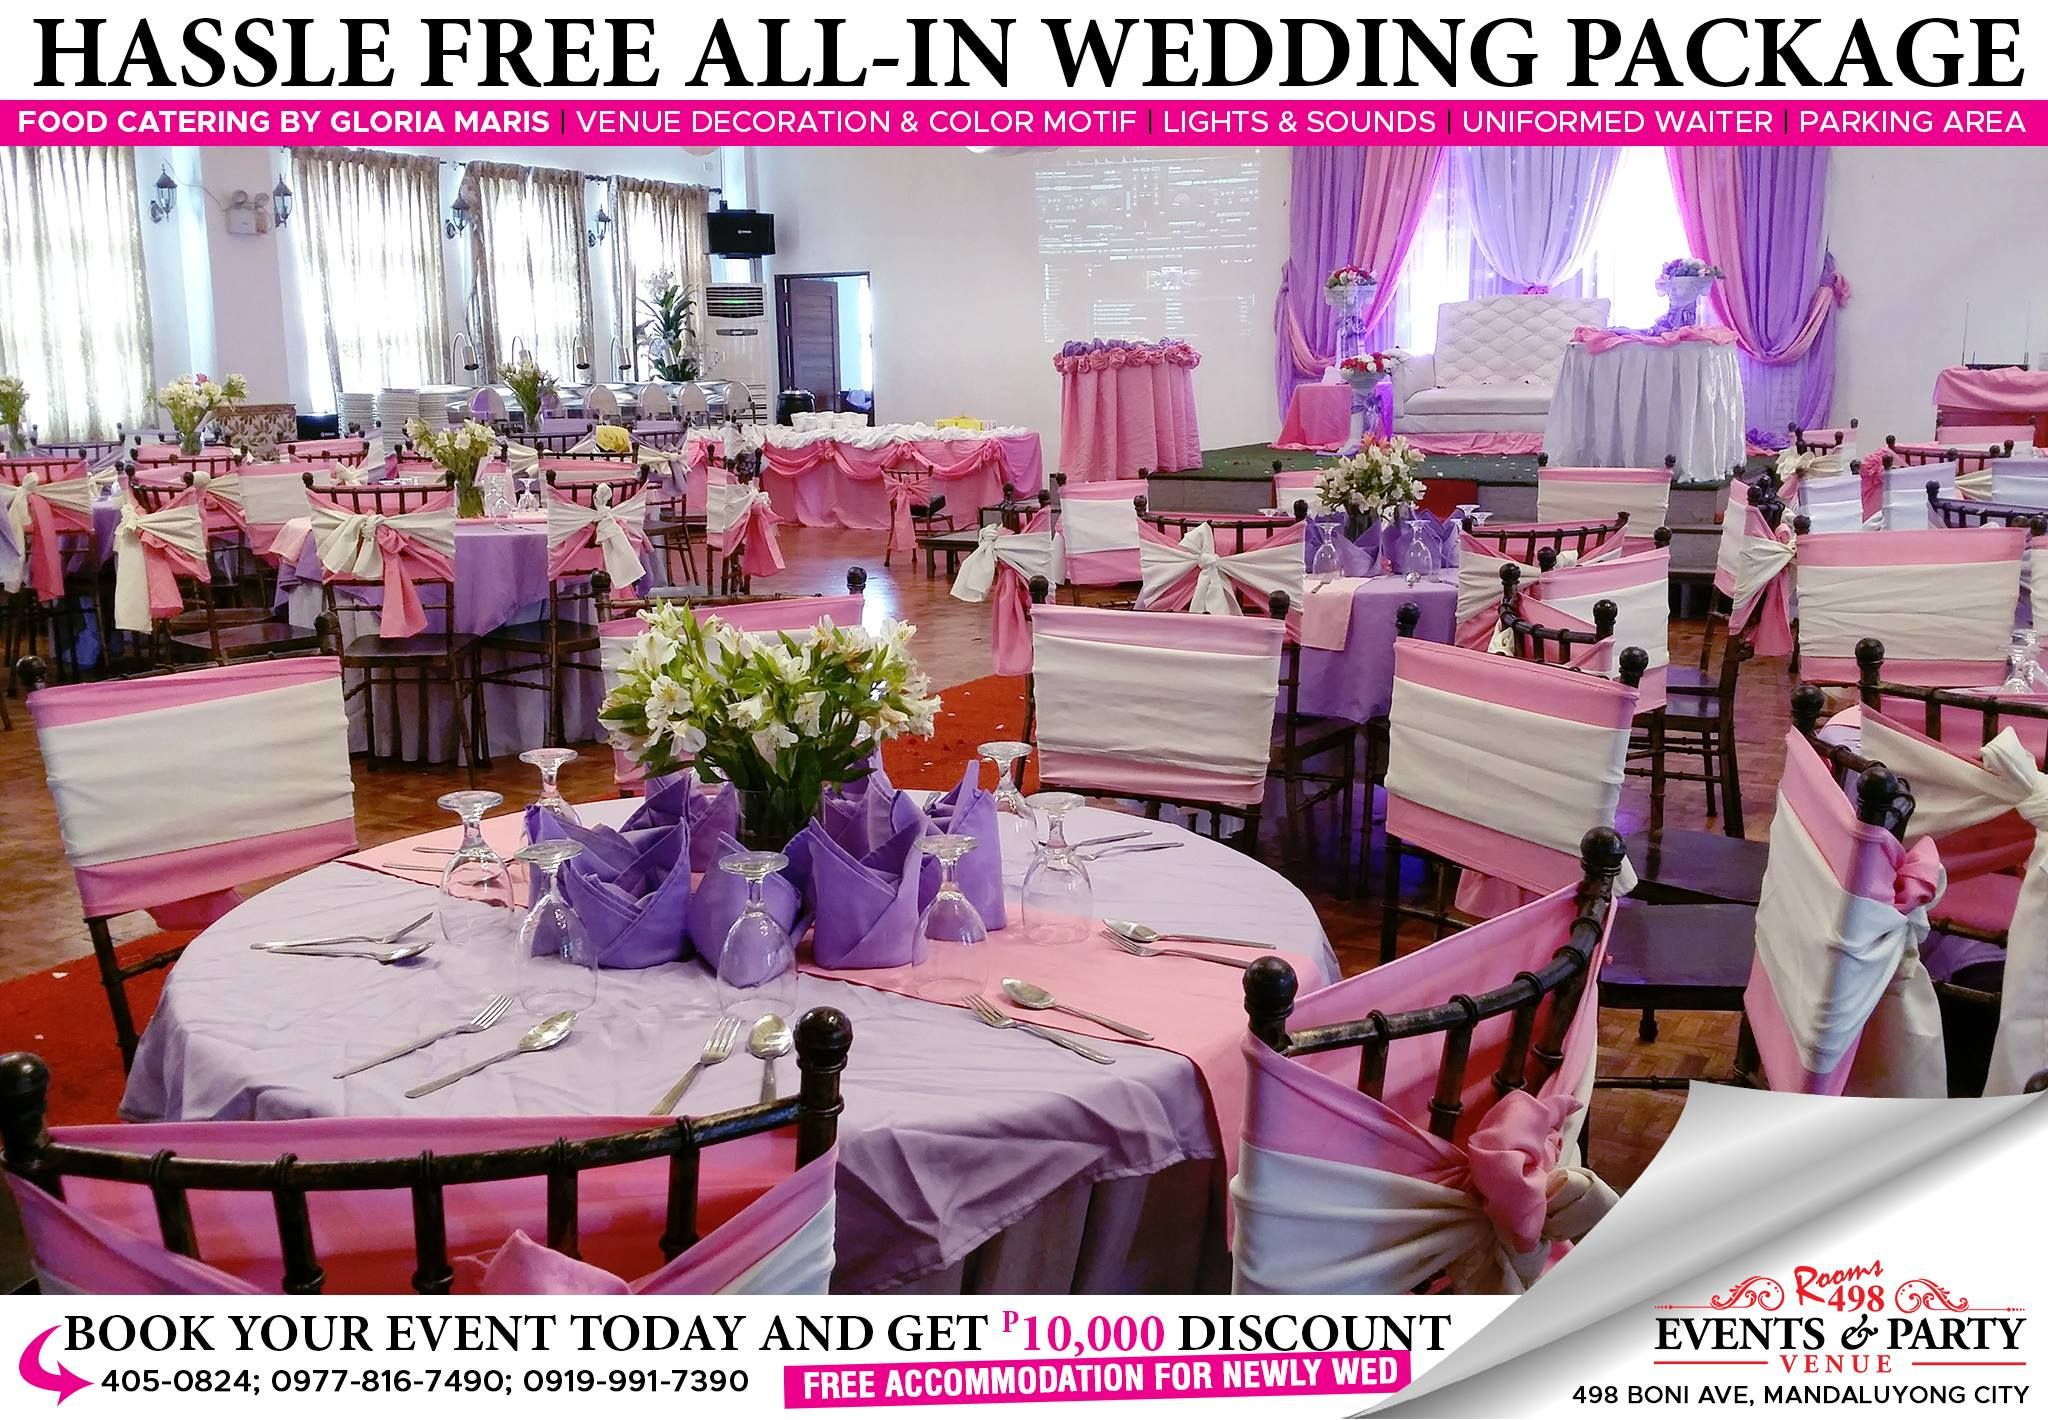 AFFORDABLE EVENTS VENUE